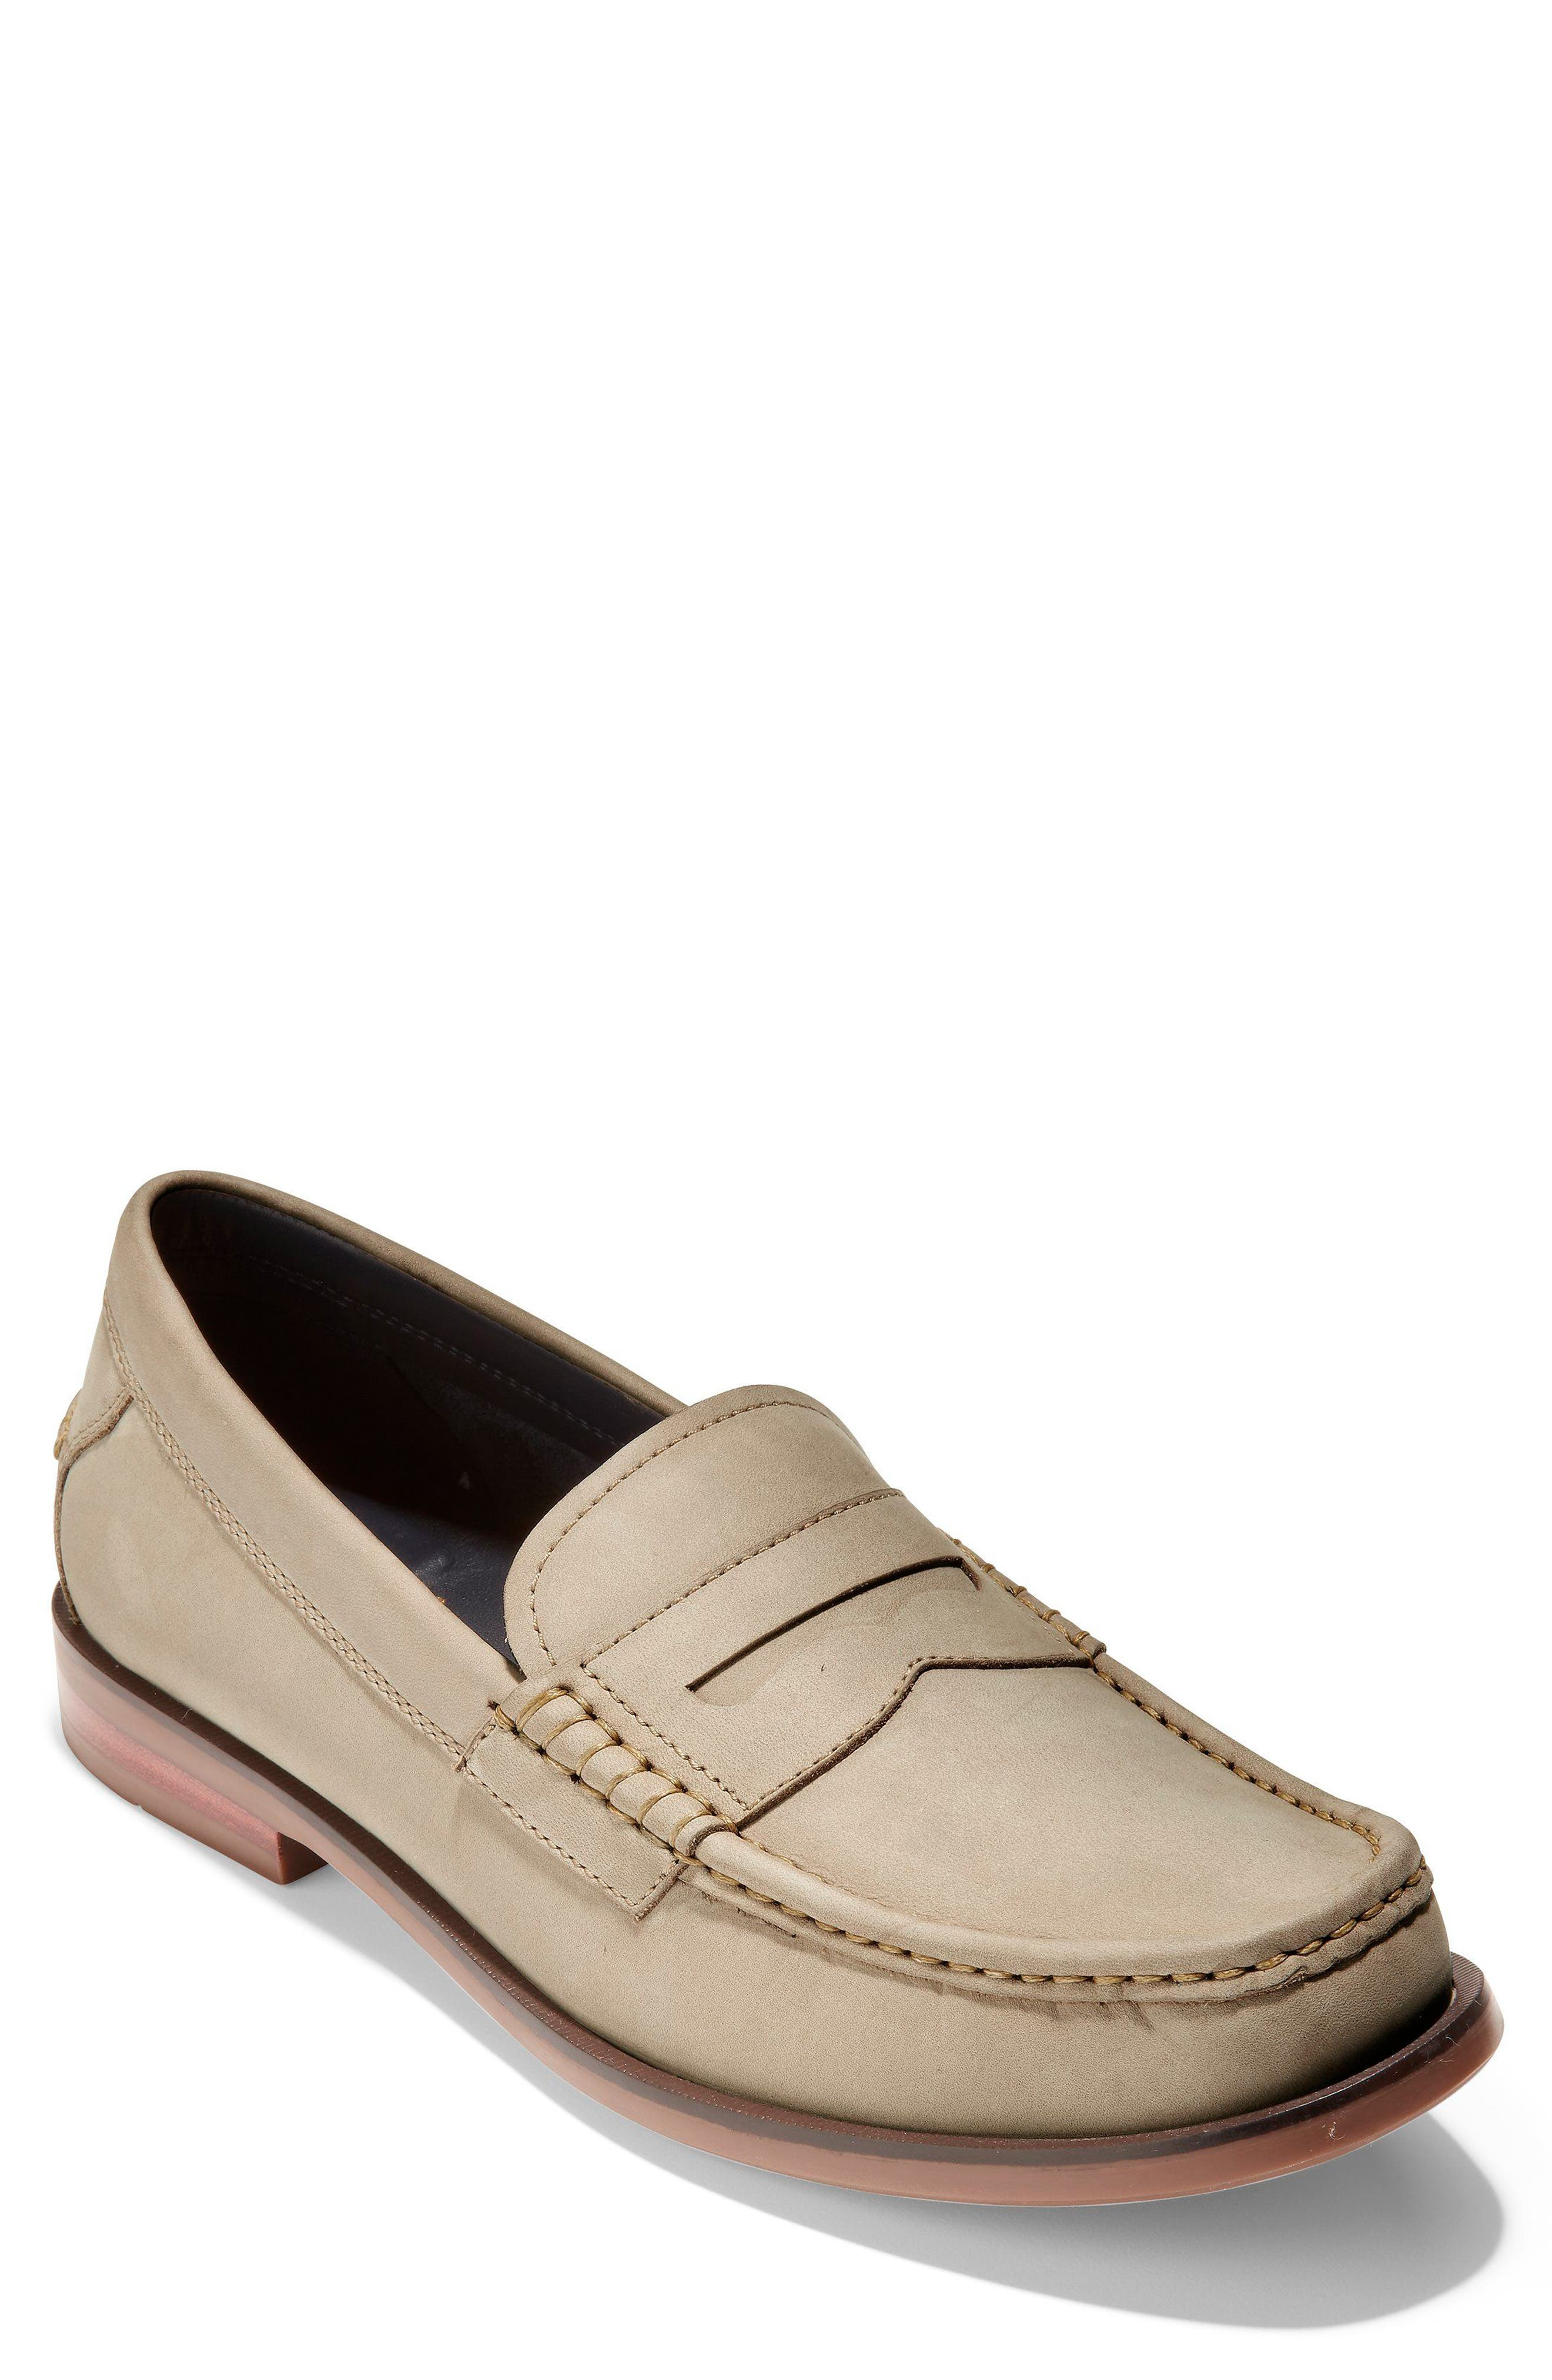 Pinch Friday Penny Loafer,                             Main thumbnail 2, color,